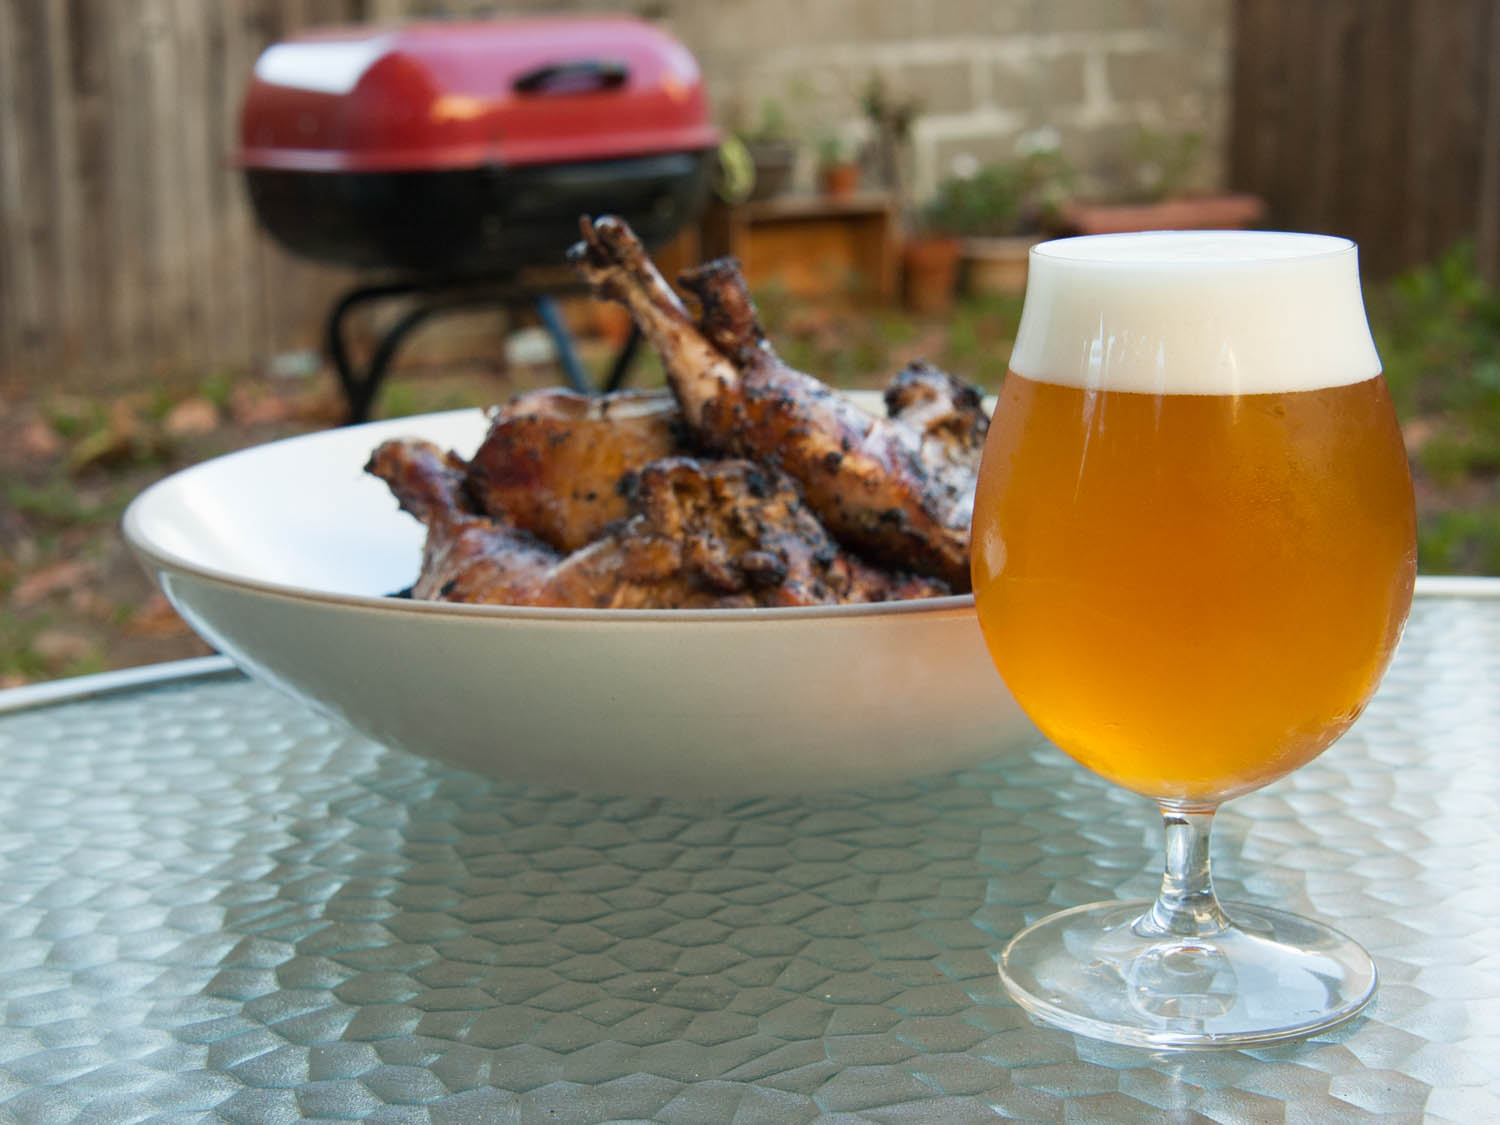 Best Food and Beer Pairings For Summer